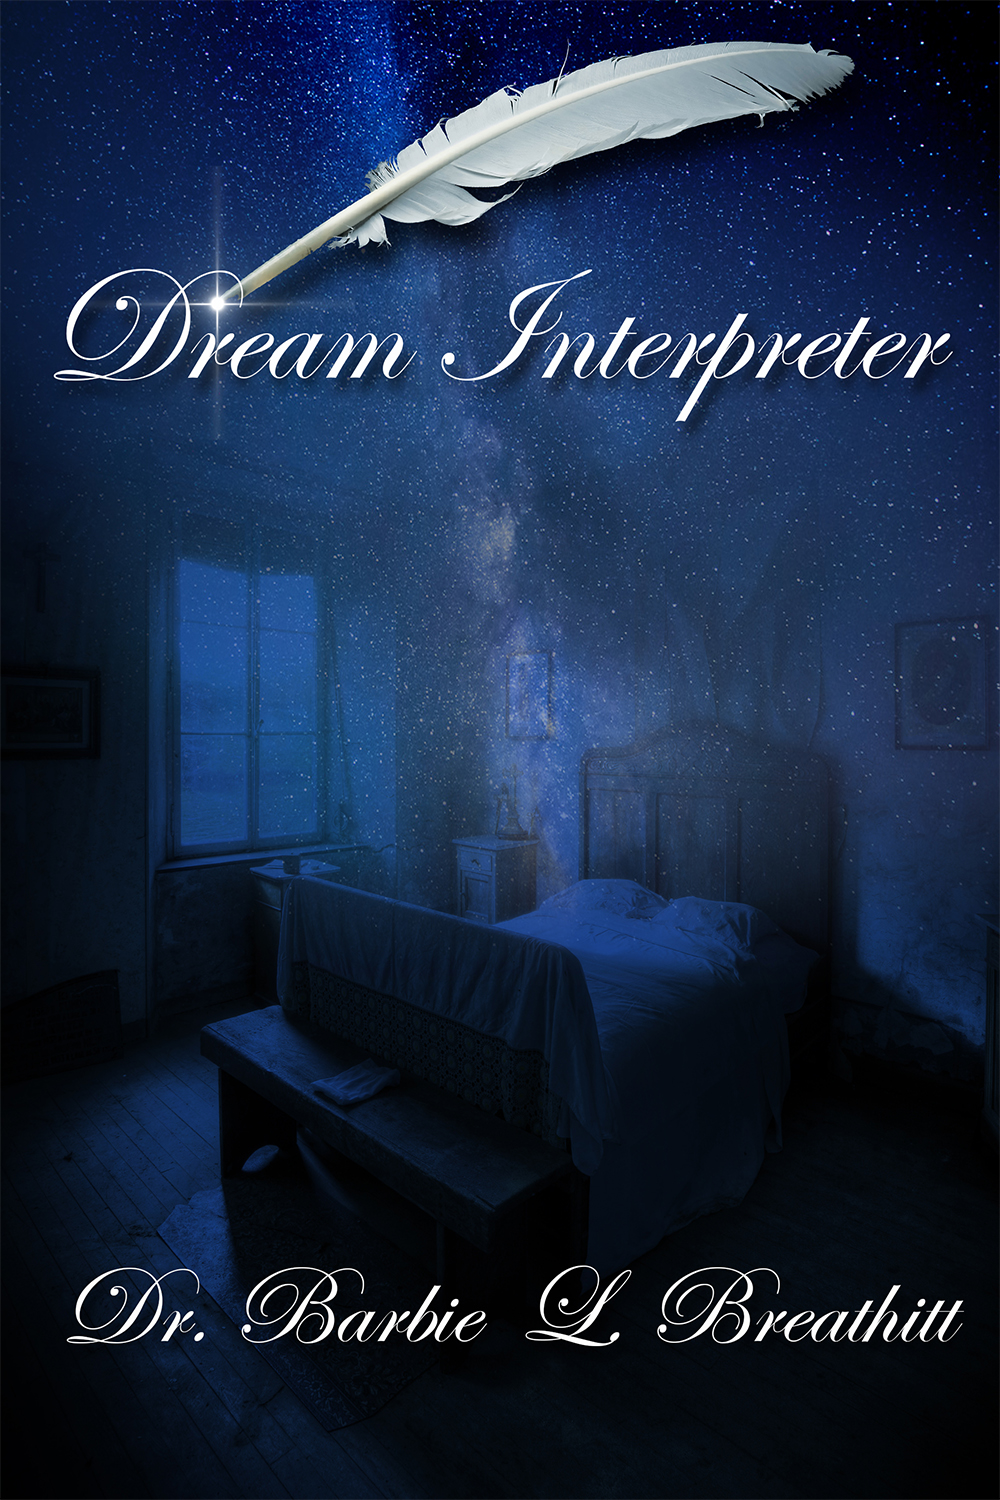 Dream Interpreter web.jpg